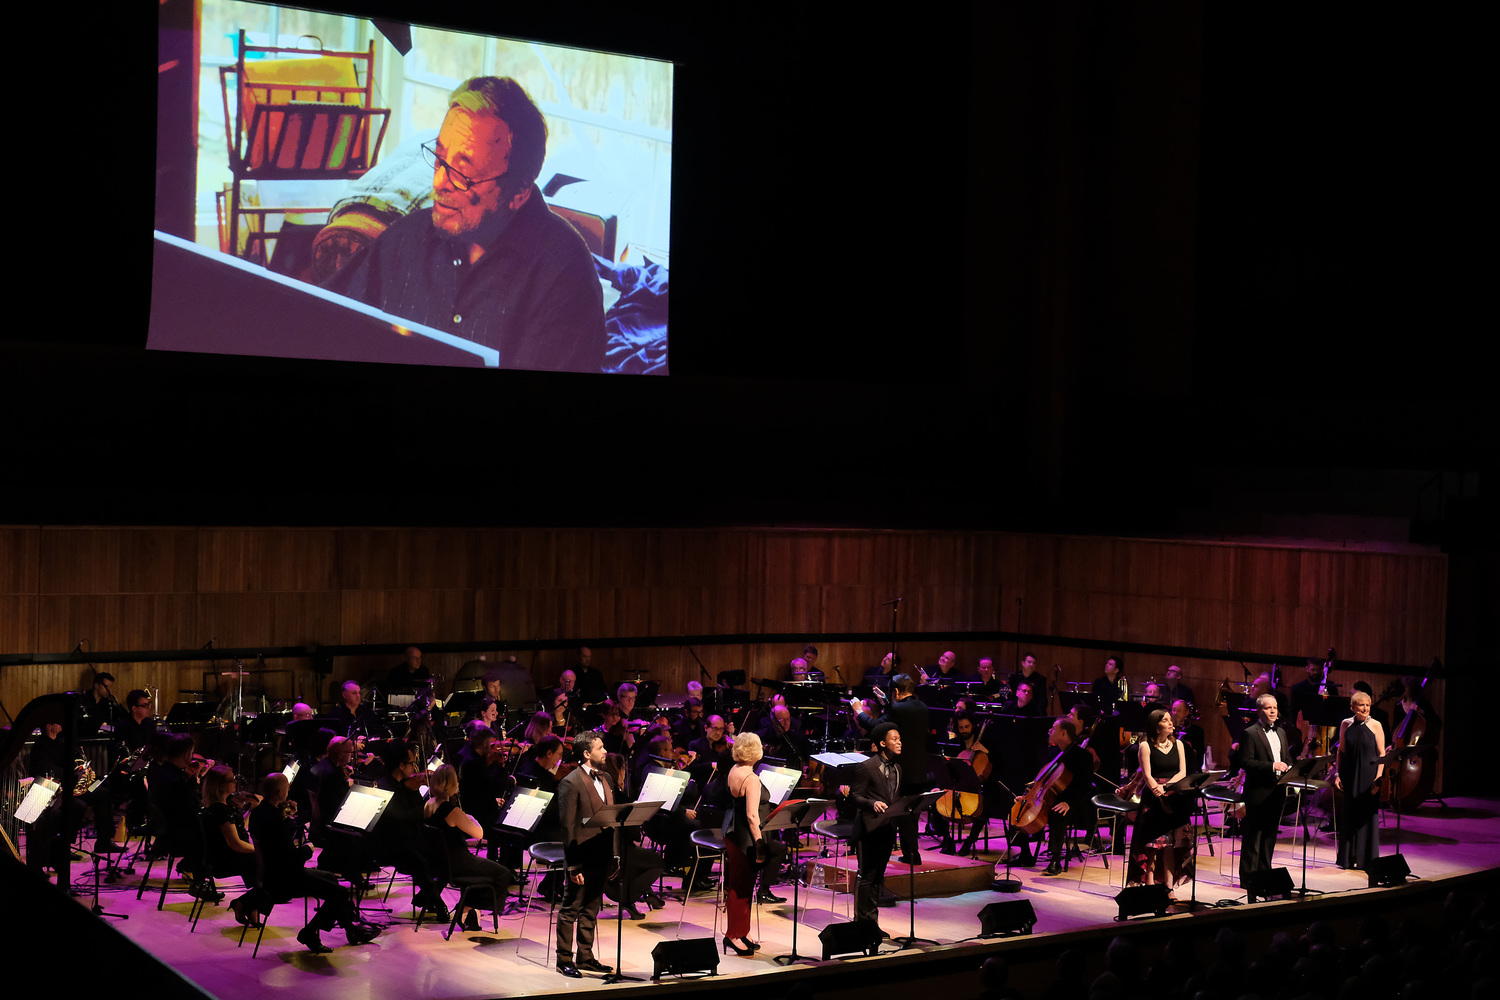 BWW Review: SONDHEIM ON SONDHEIM, Royal Festival Hall